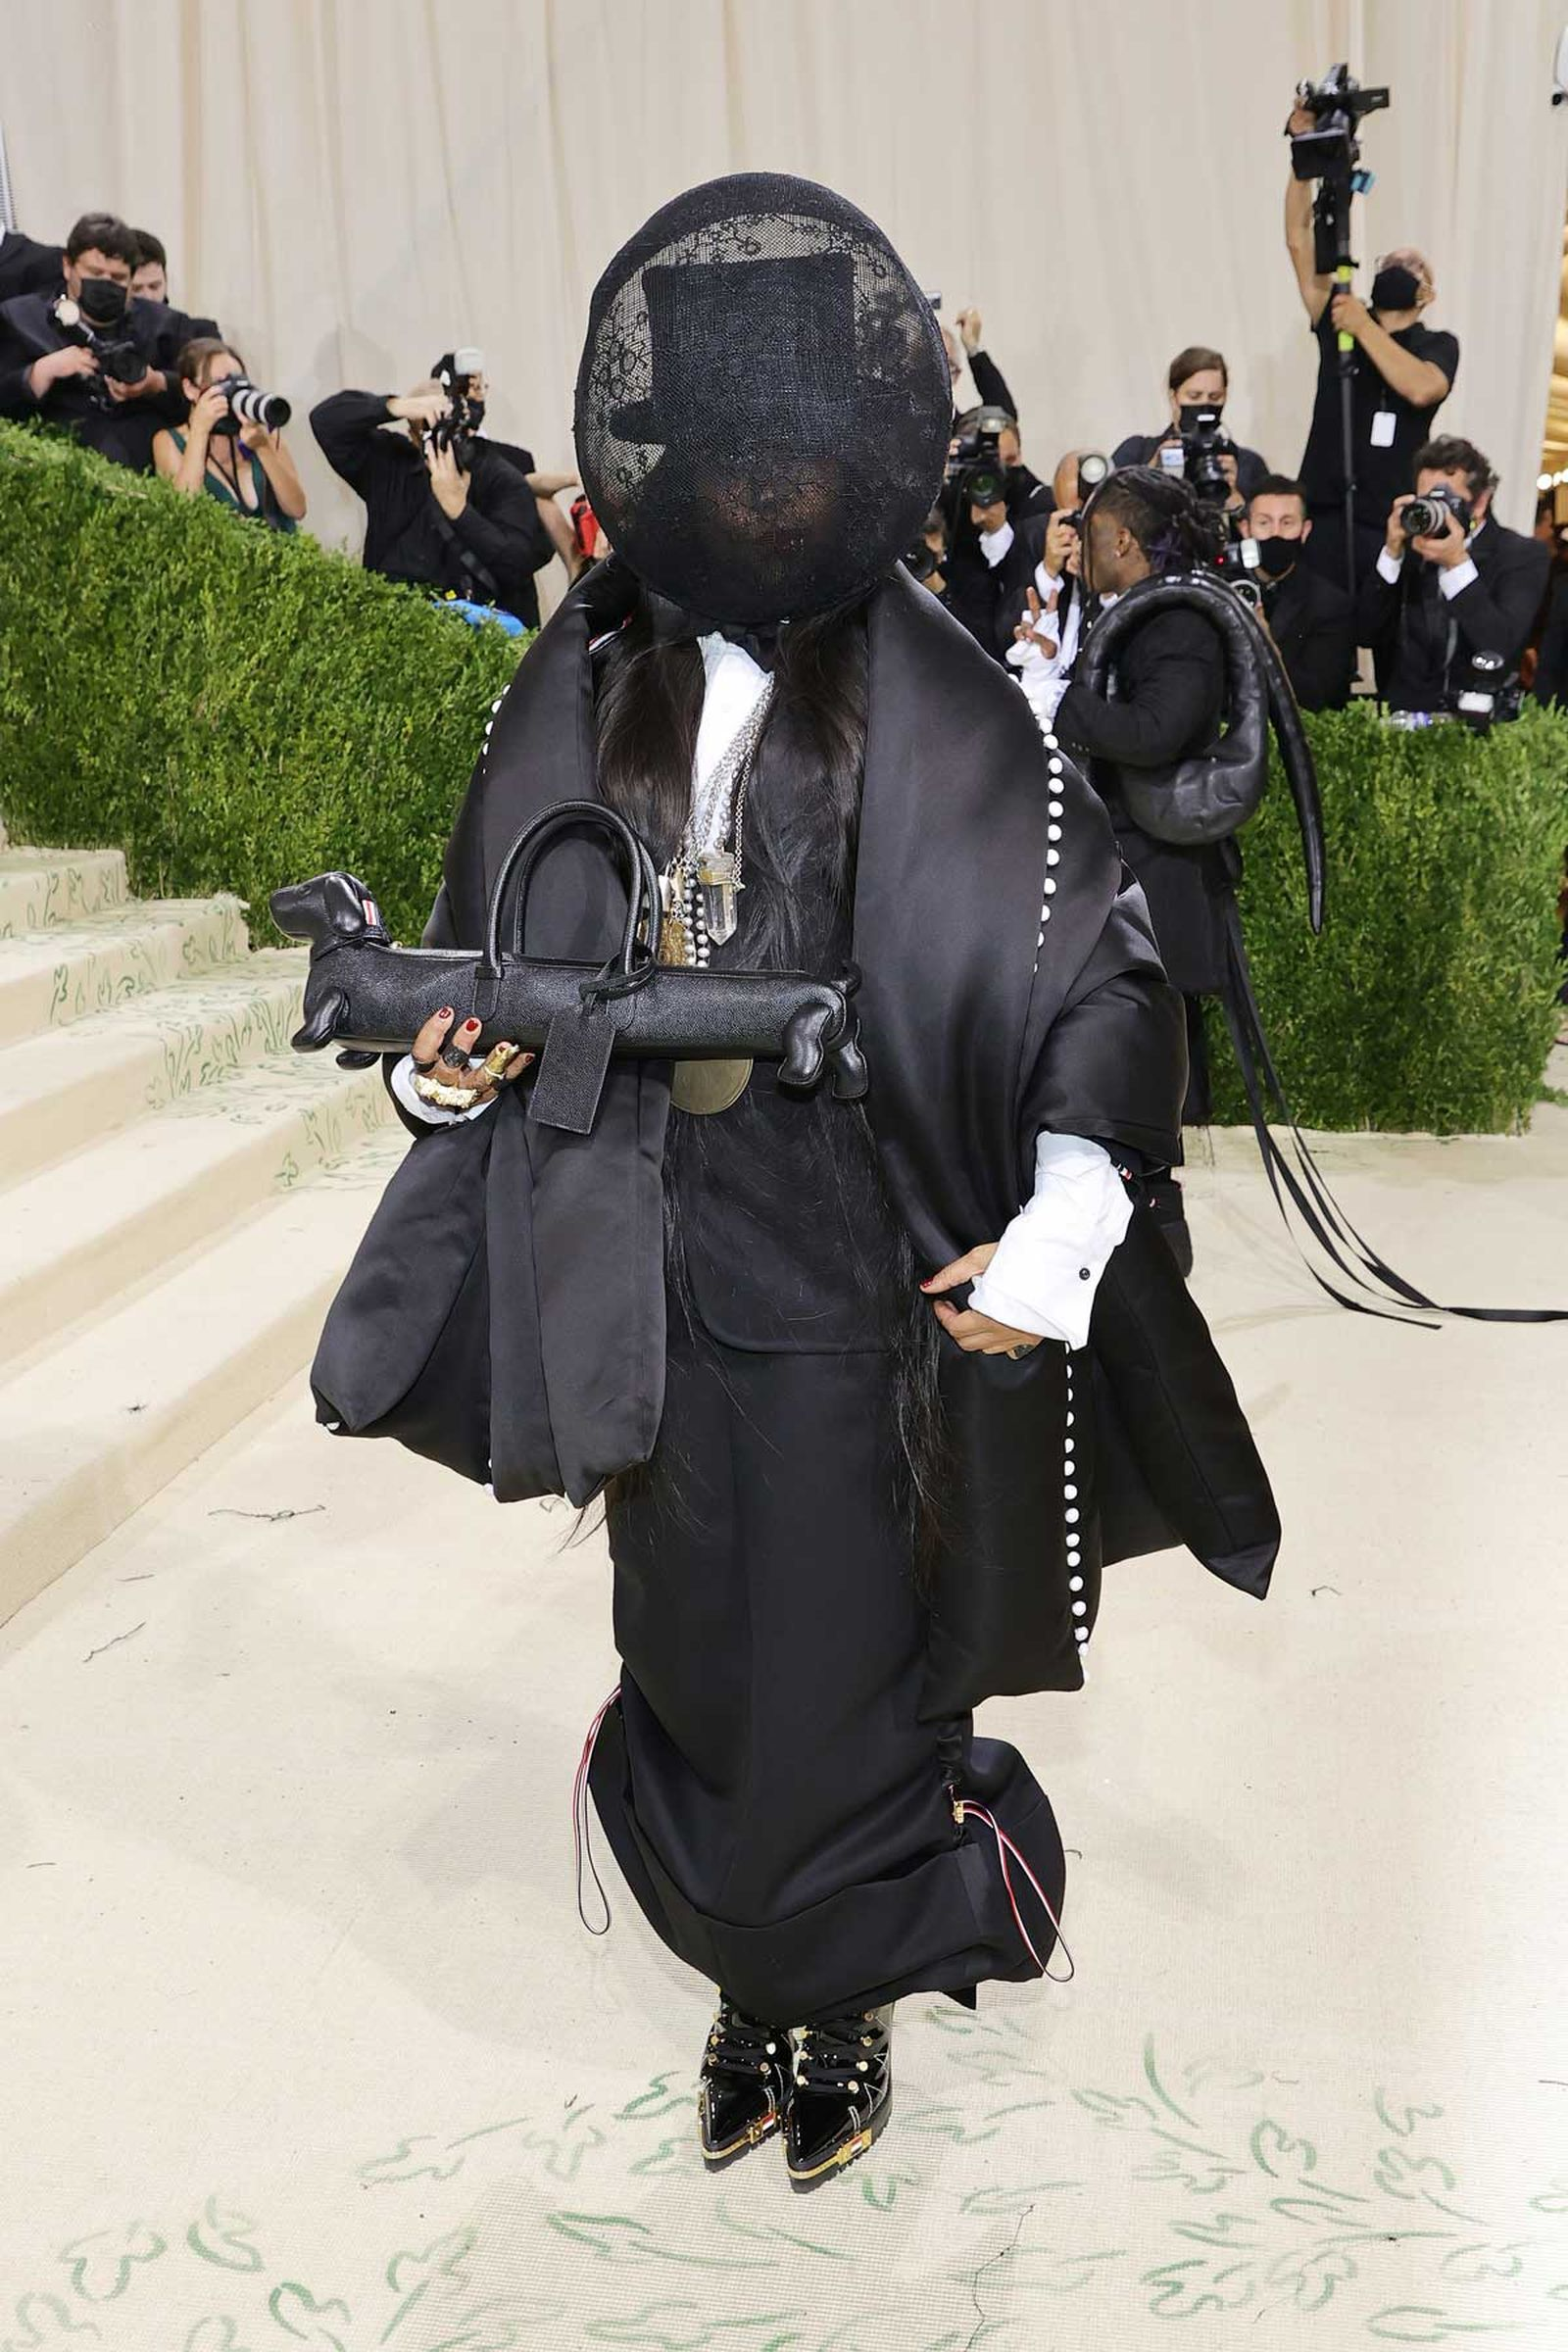 met gala 2021 celebrity style looks best outfits red carpet